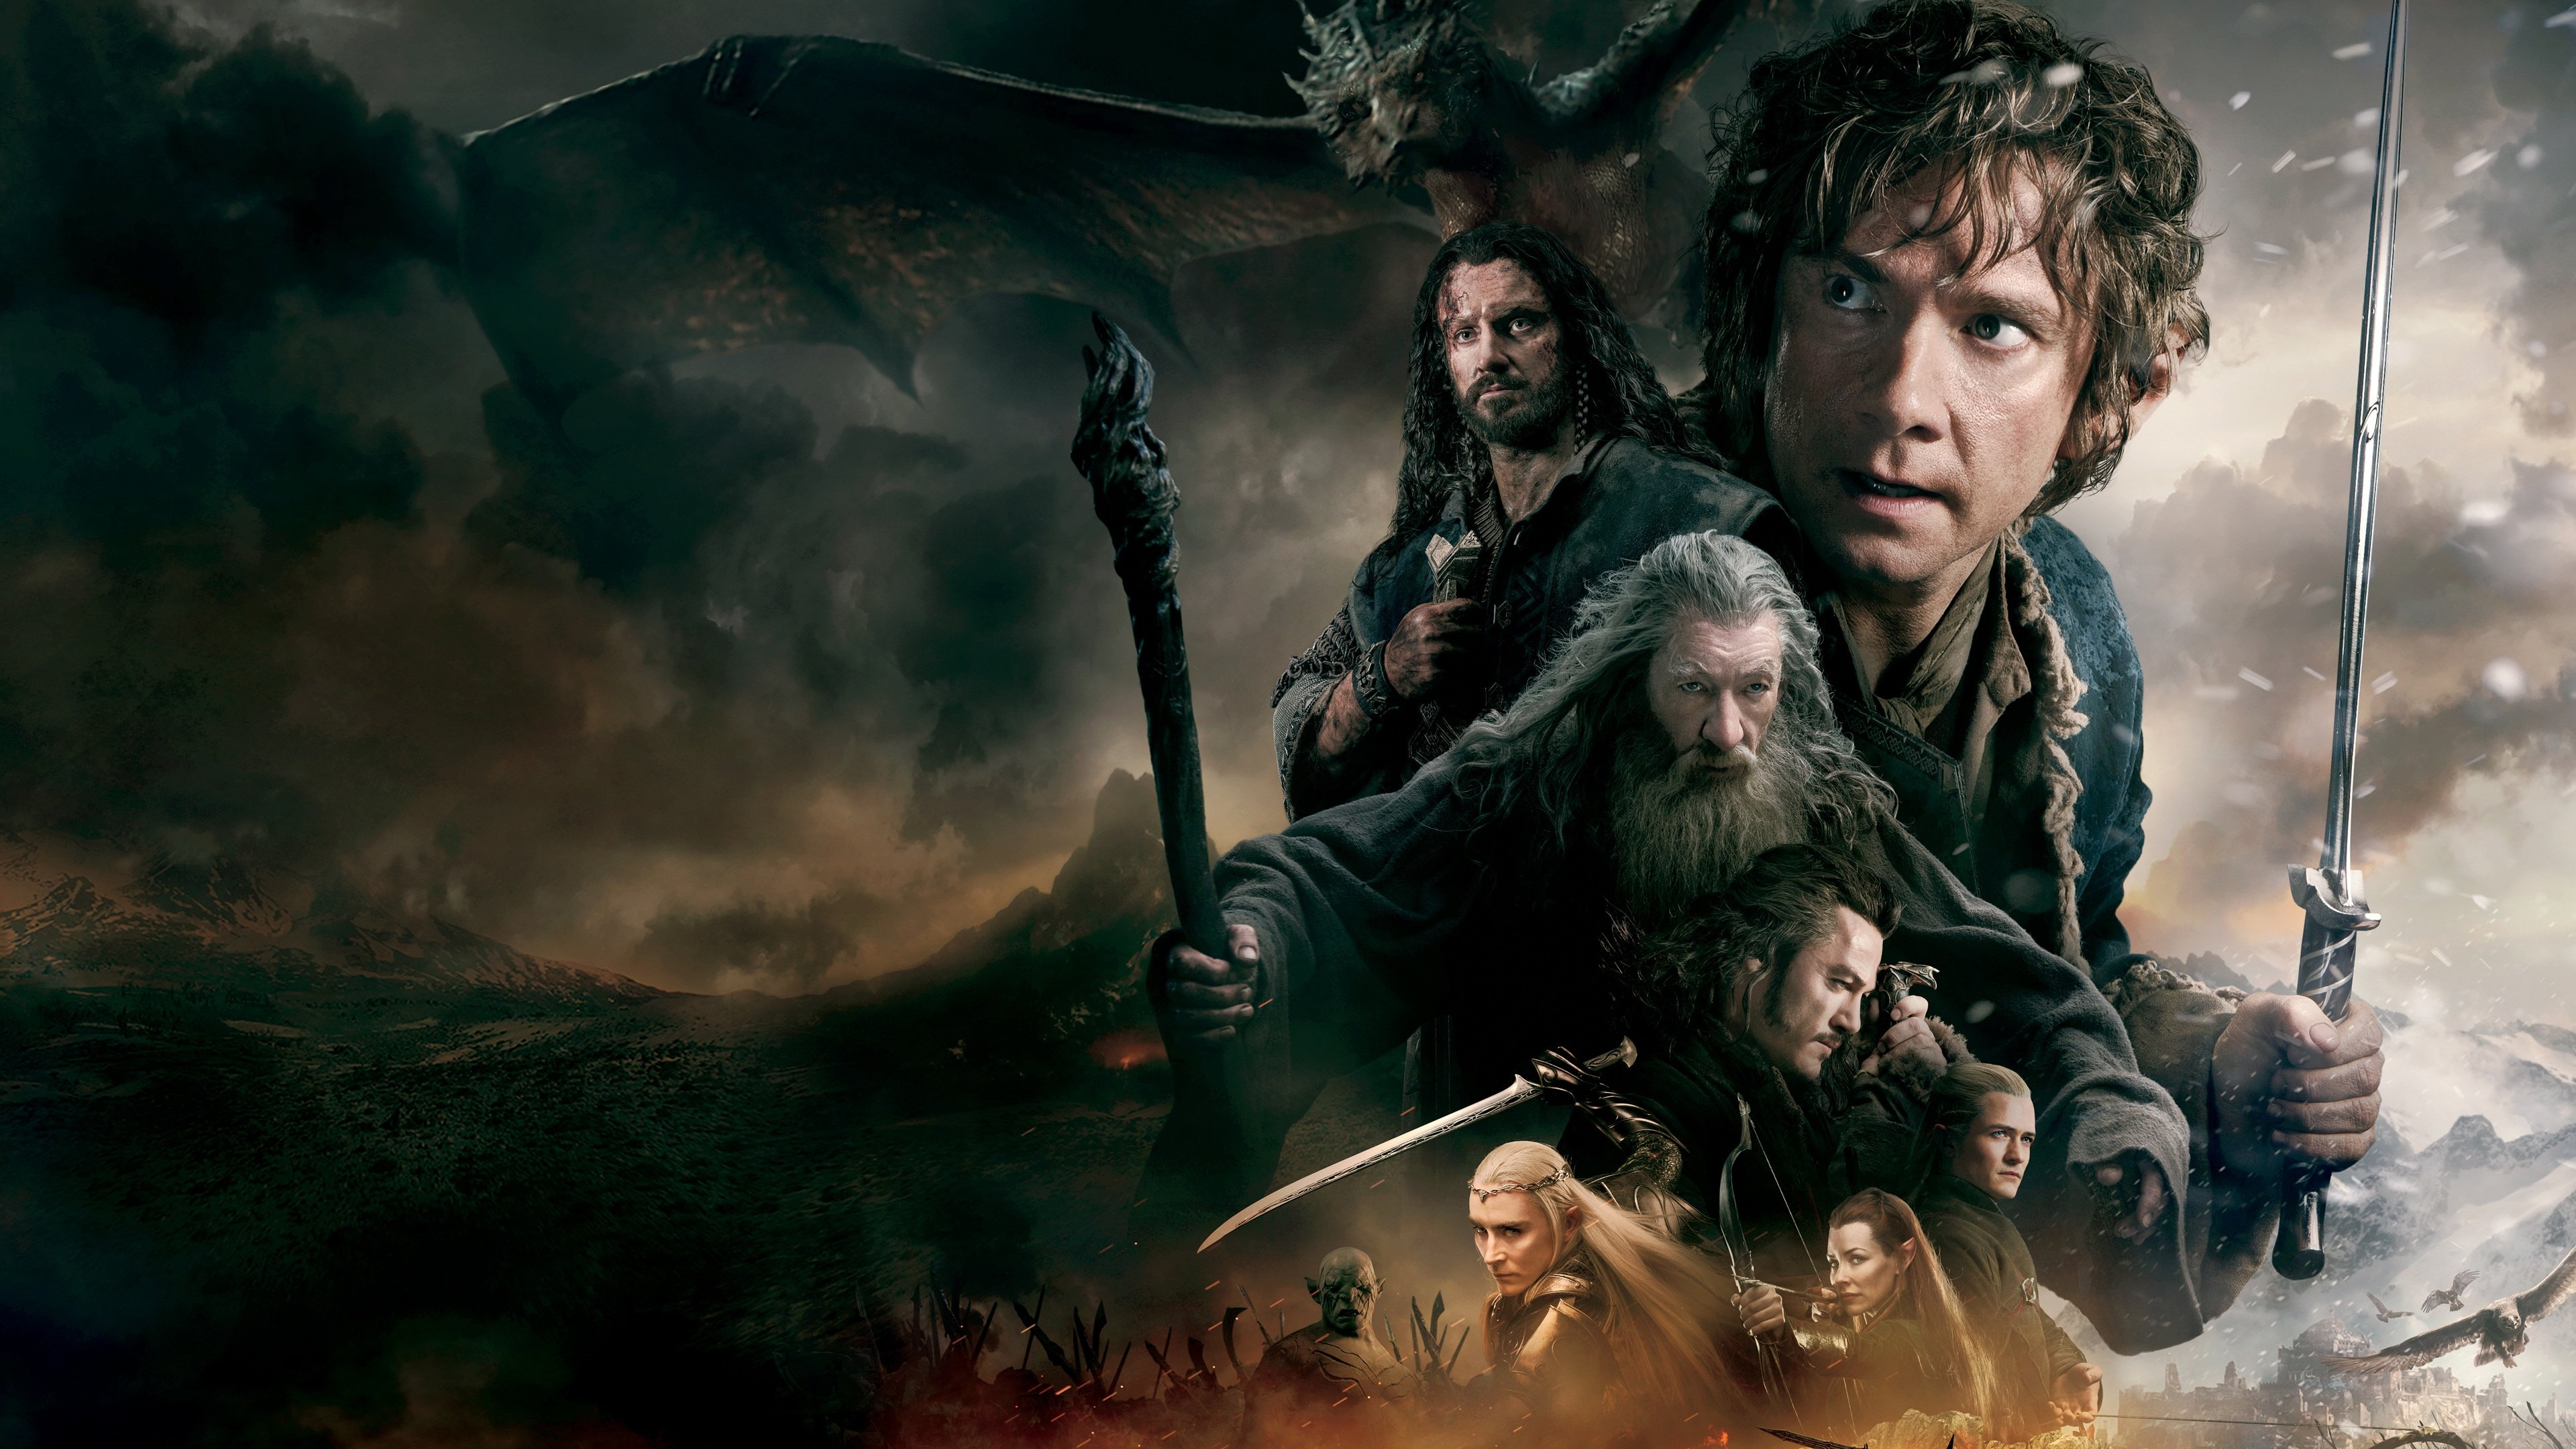 Hobbit The Battle of the Five Armies 2014 Wallpapers HD Wallpapers 3840x2160